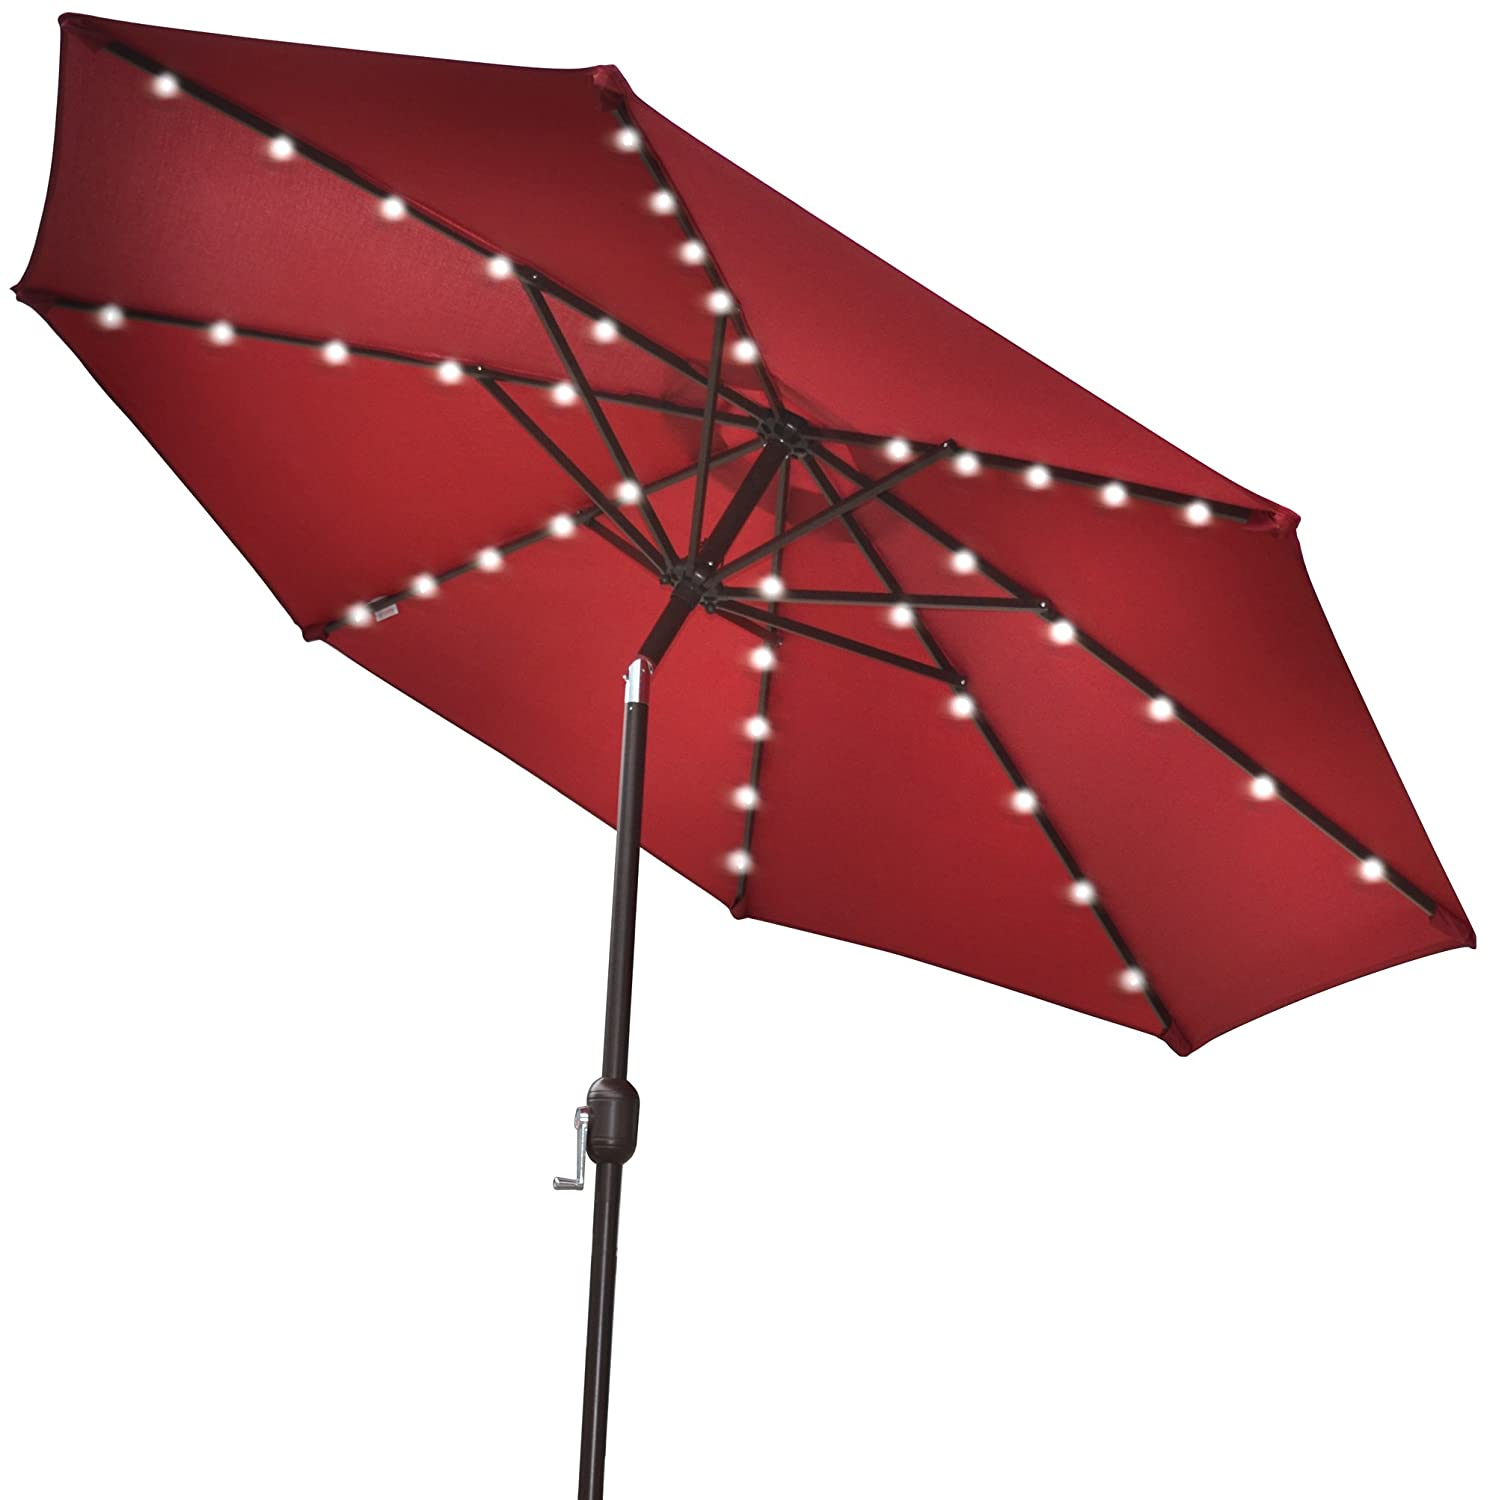 Amazon.com : STRONG CAMEL 9u0027NEW SOLAR 40 LED LIGHTS PATIO UMBRELLA GARDEN  OUTDOOR SUNSHADE MARKET BURGUNDY : Umbrella With Solar Lights : Garden U0026  Outdoor